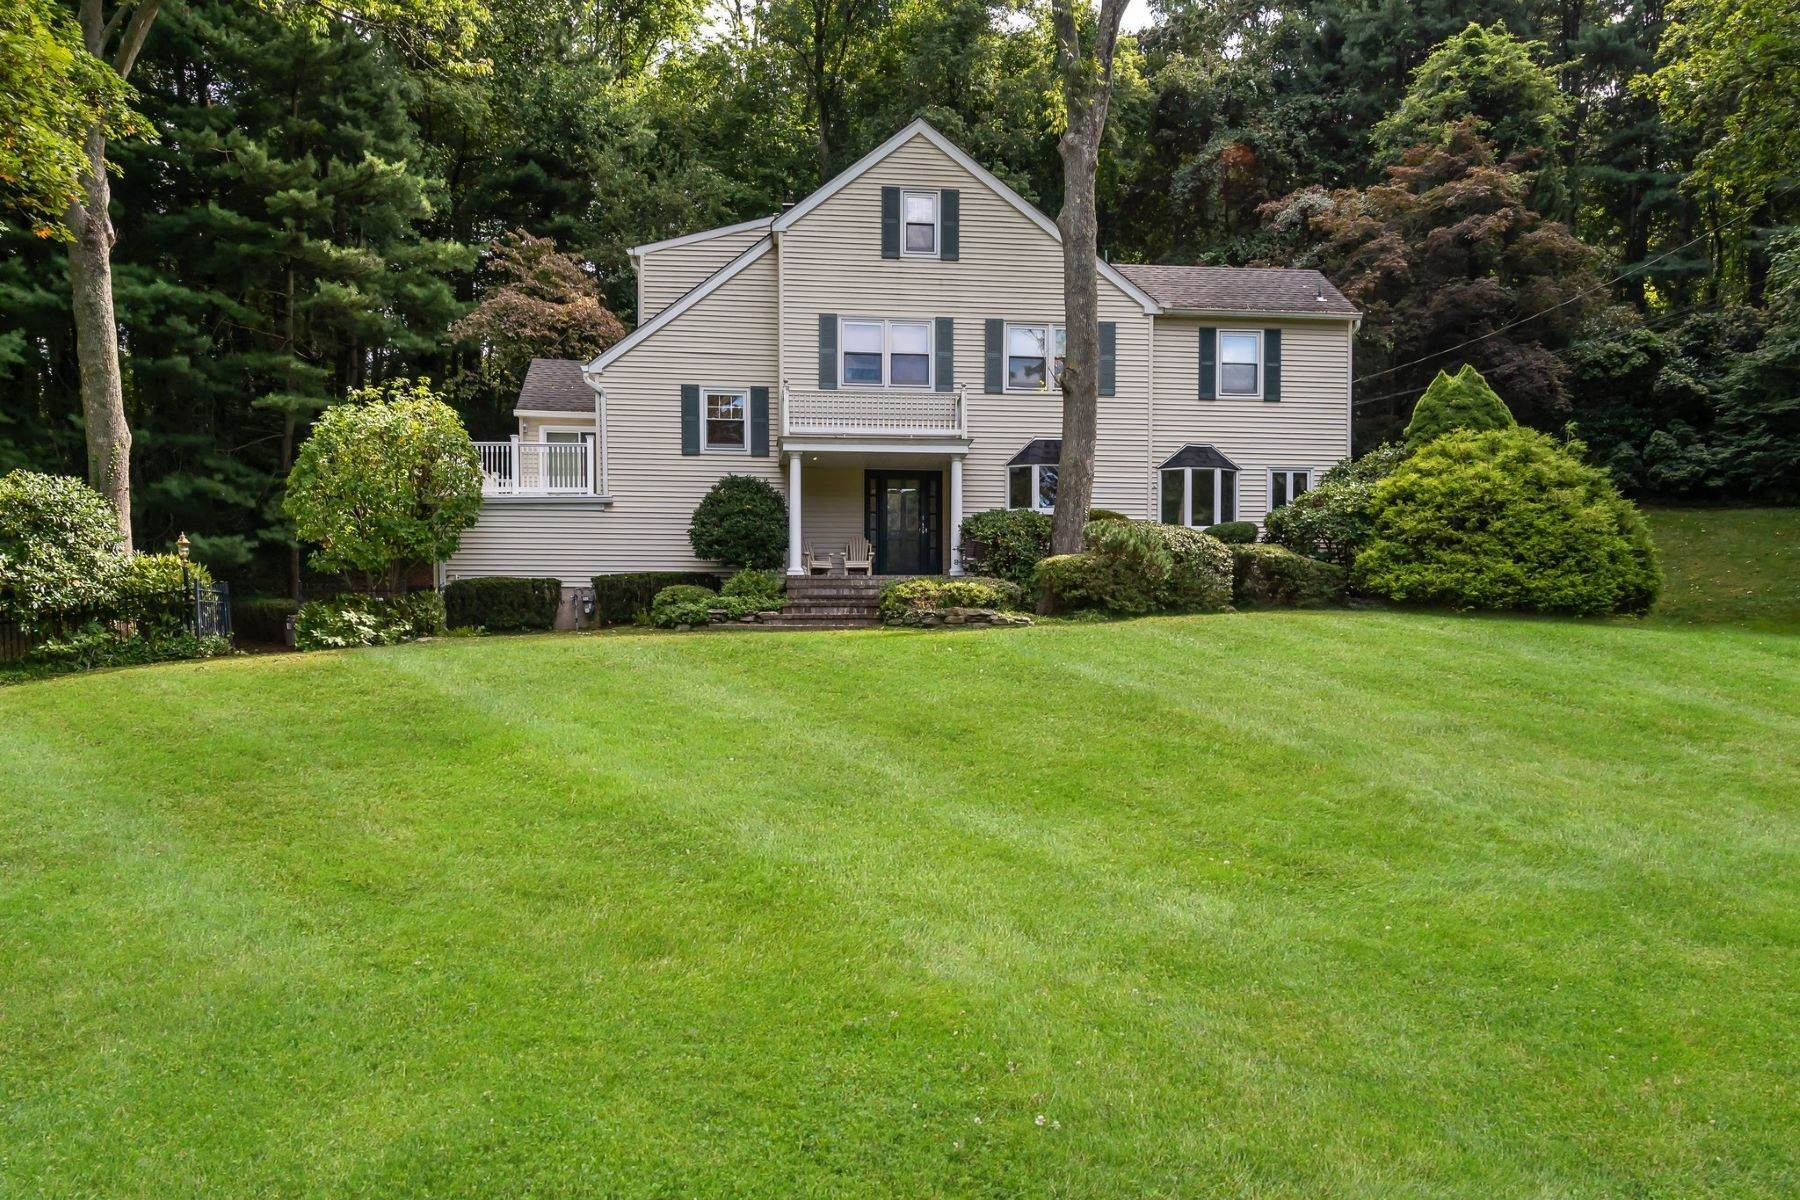 Single Family Homes for Sale at 1 Pond Drive, Lloyd Harbor, Ny, 11743 1 Pond Drive Lloyd Harbor, New York 11743 United States